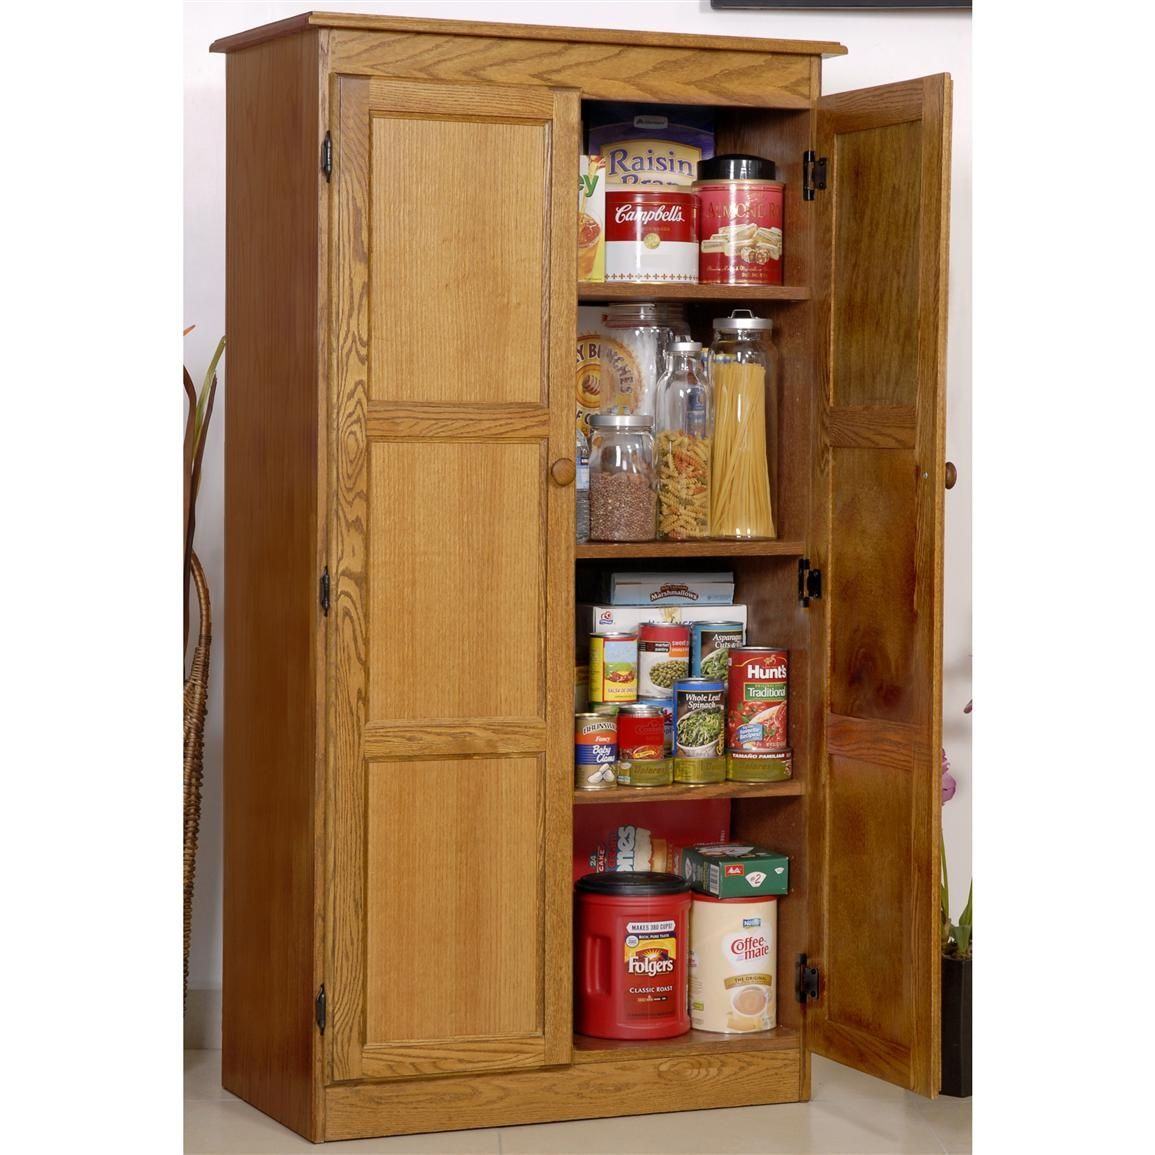 Tall Storage Cabinets With Doors Wood Httpdivulgamaisweb